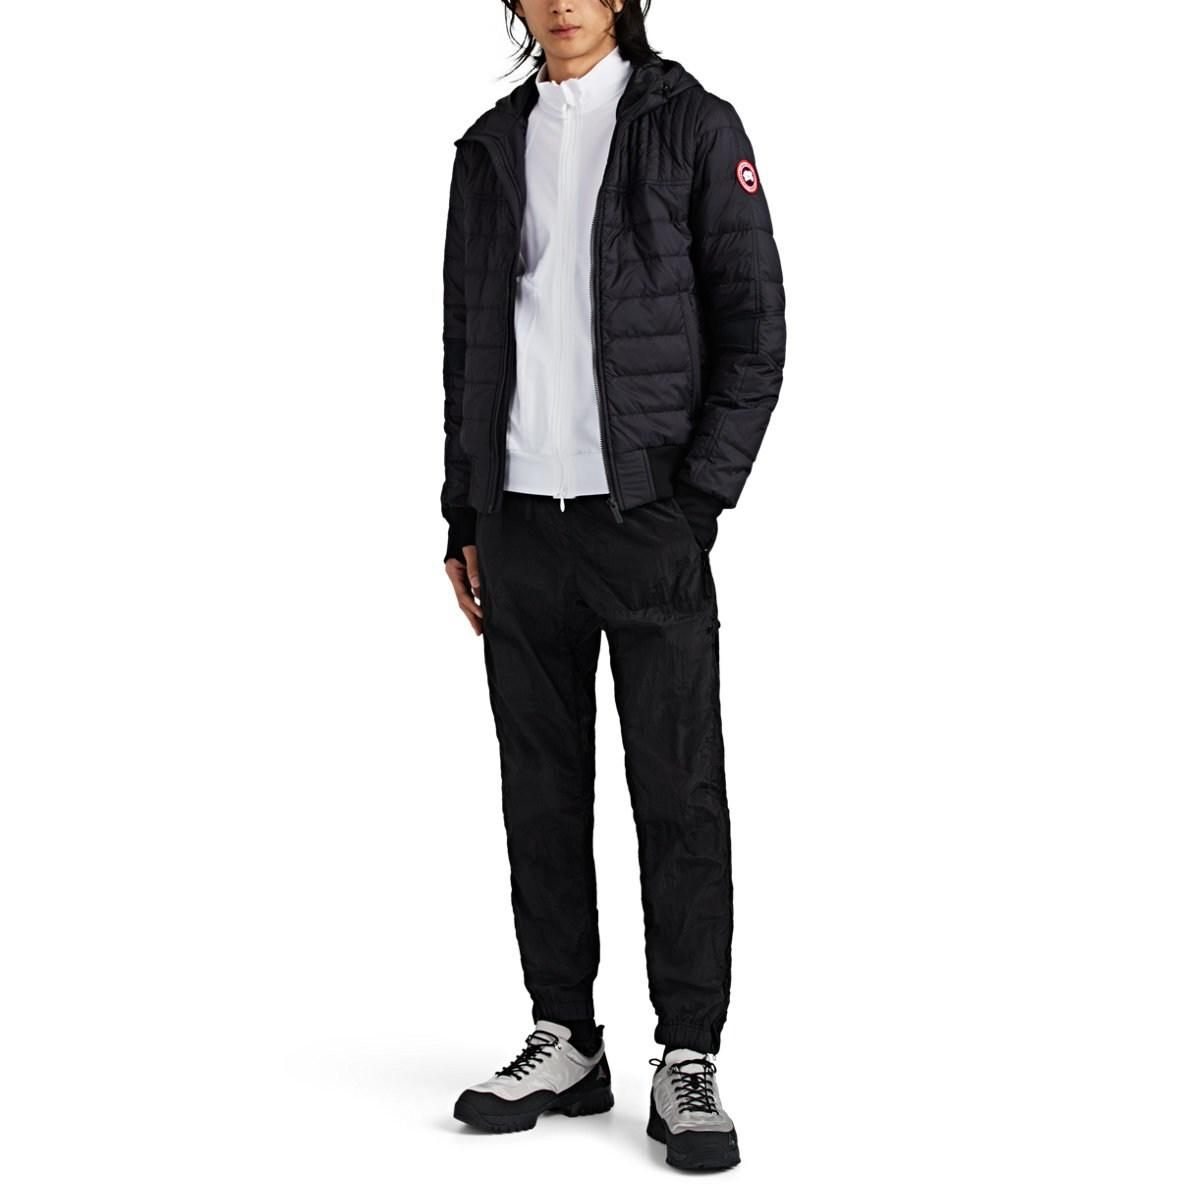 28c06f20e3a3 Canada Goose - Black Cabri Quilted Ripstop Hooded Jacket for Men - Lyst.  View fullscreen